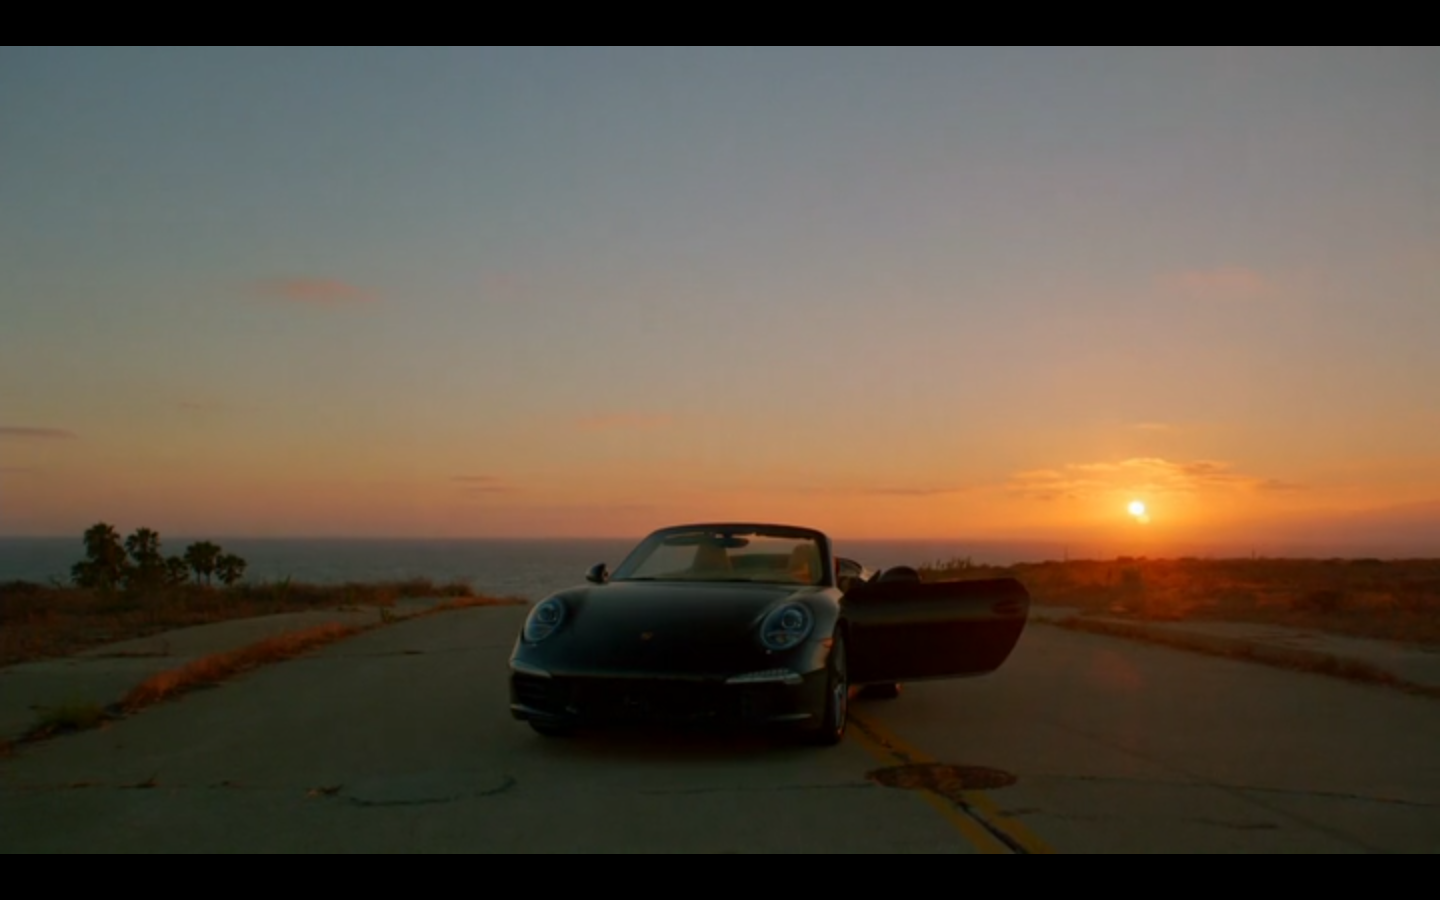 Californication Hank Moody Porsche series finale